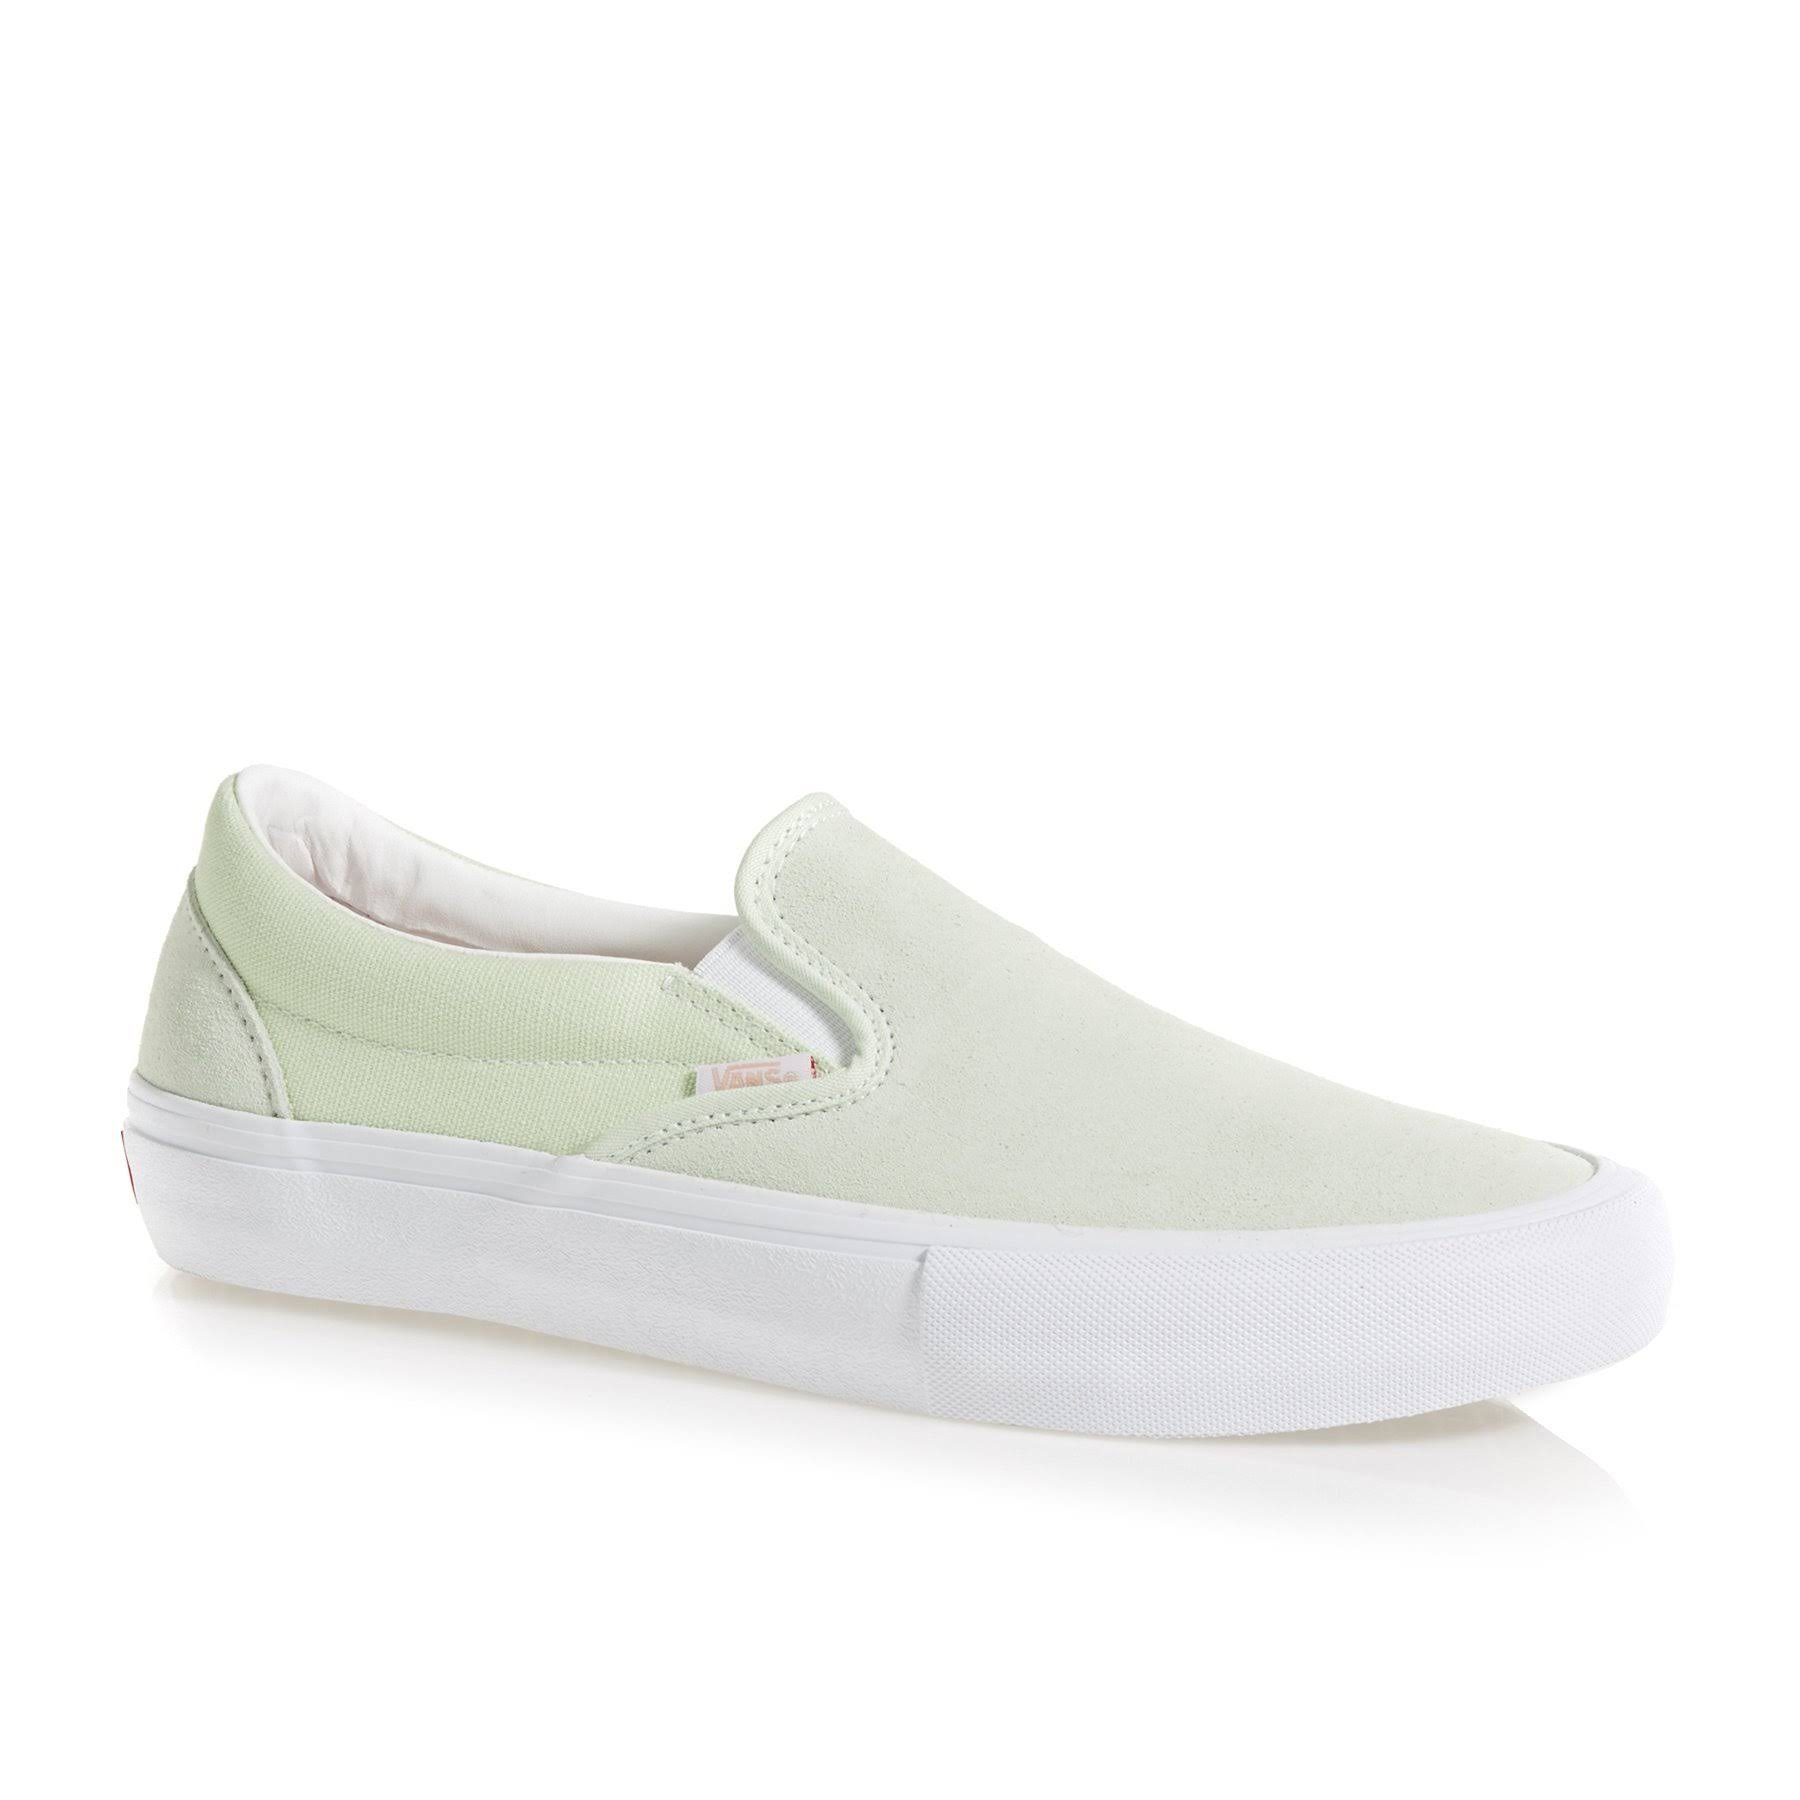 ambrosia Men Slip white Ambrosia Vans Women 13 0 White 5 Pro on 14 U4wqxdt